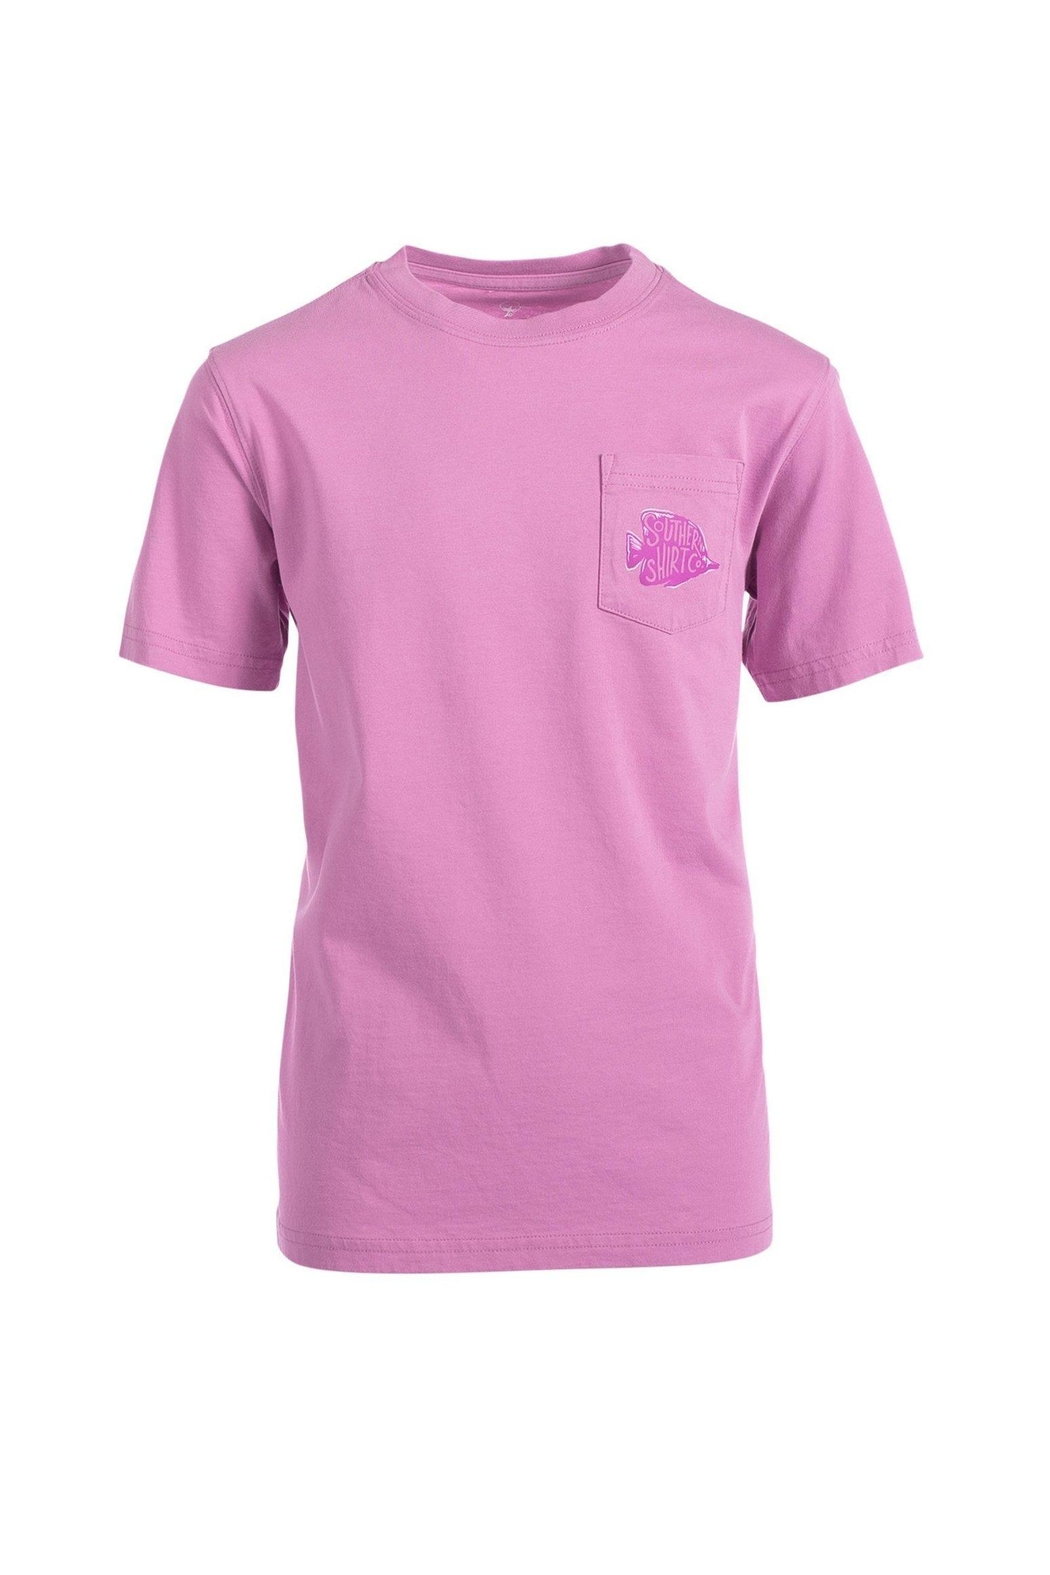 Southern Shirt Girls Fresh-To-Depth Tee - Front Full Image